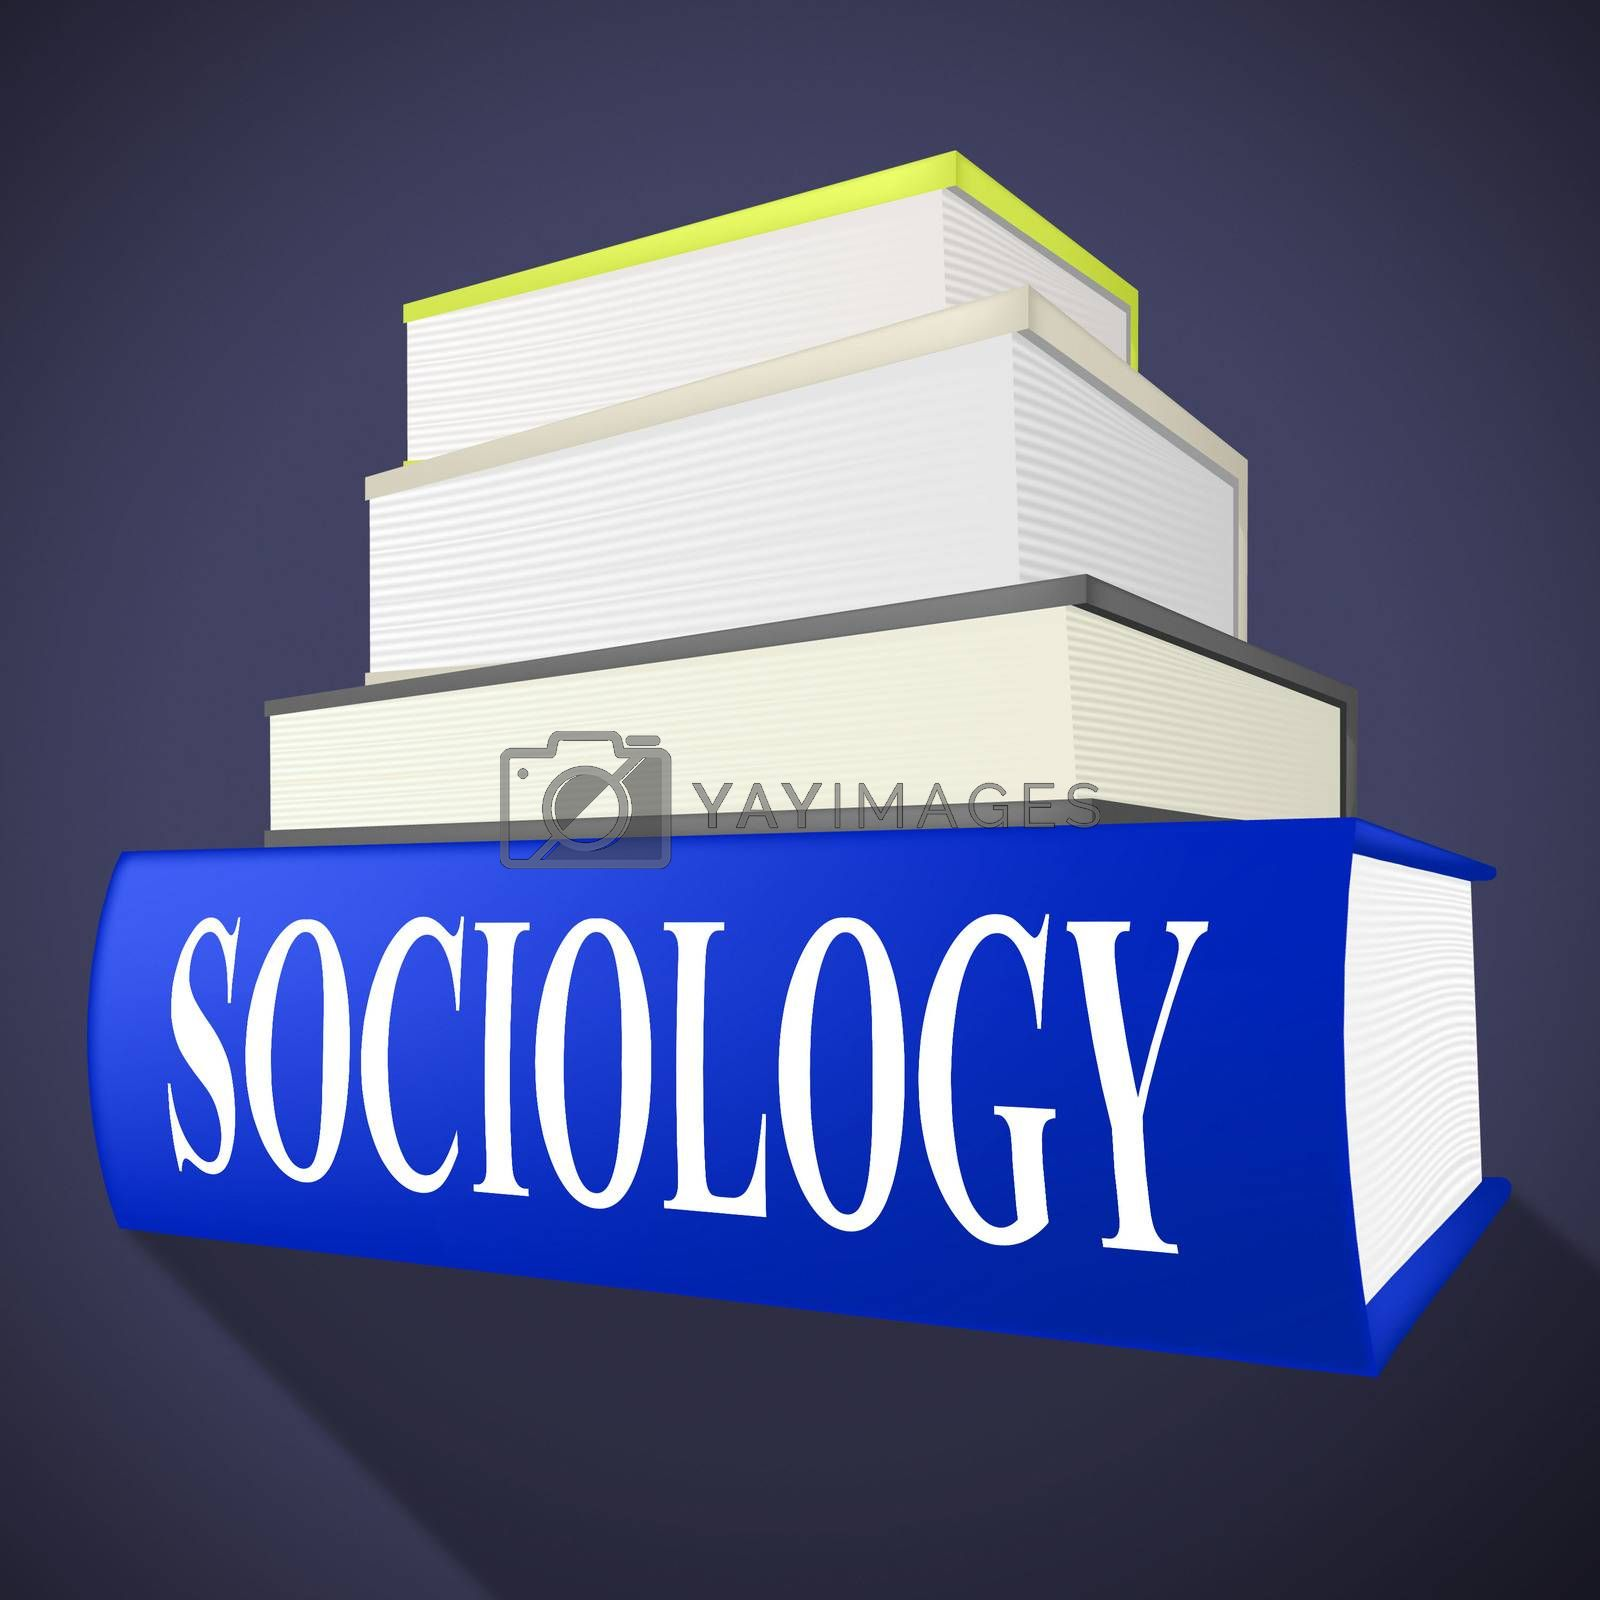 Sociology Books Shows Non-Fiction Knowledge And Assistance by stuartmiles